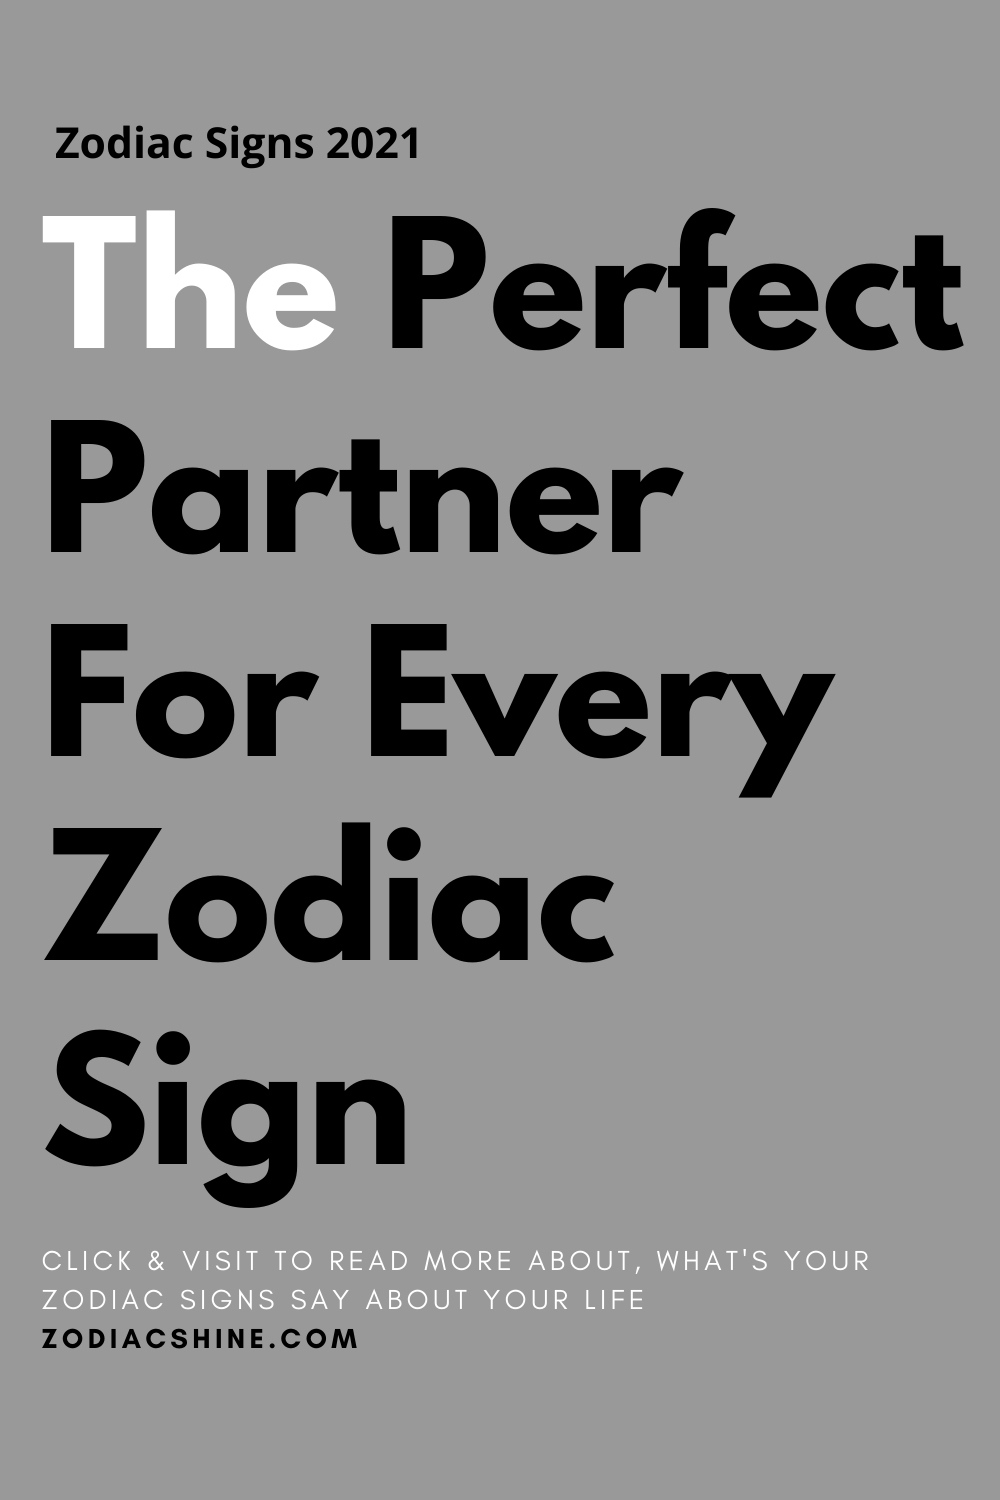 The Perfect Partner For Every Zodiac Sign